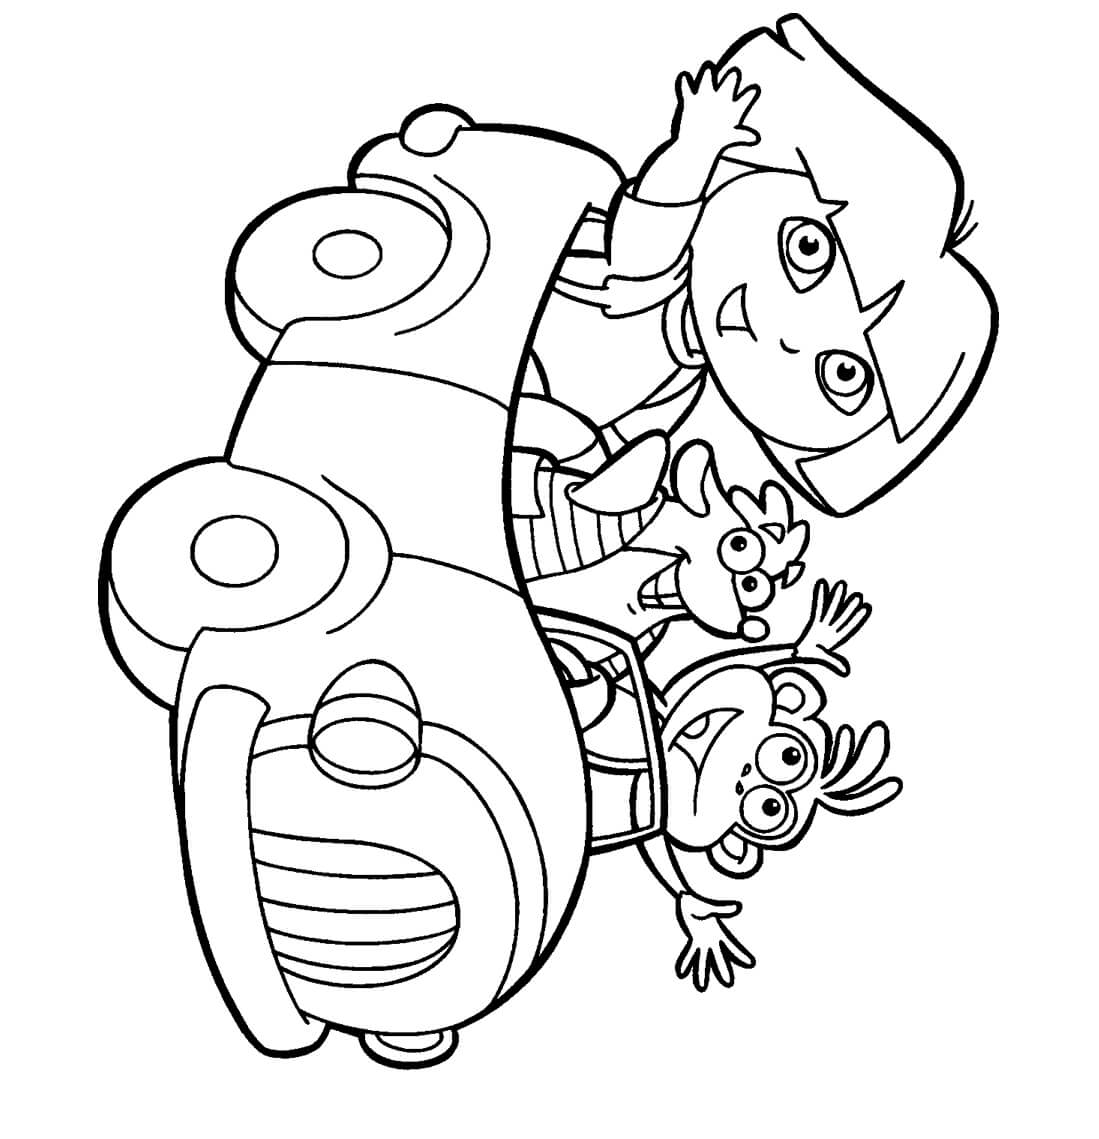 coloring pages with dora - photo#20